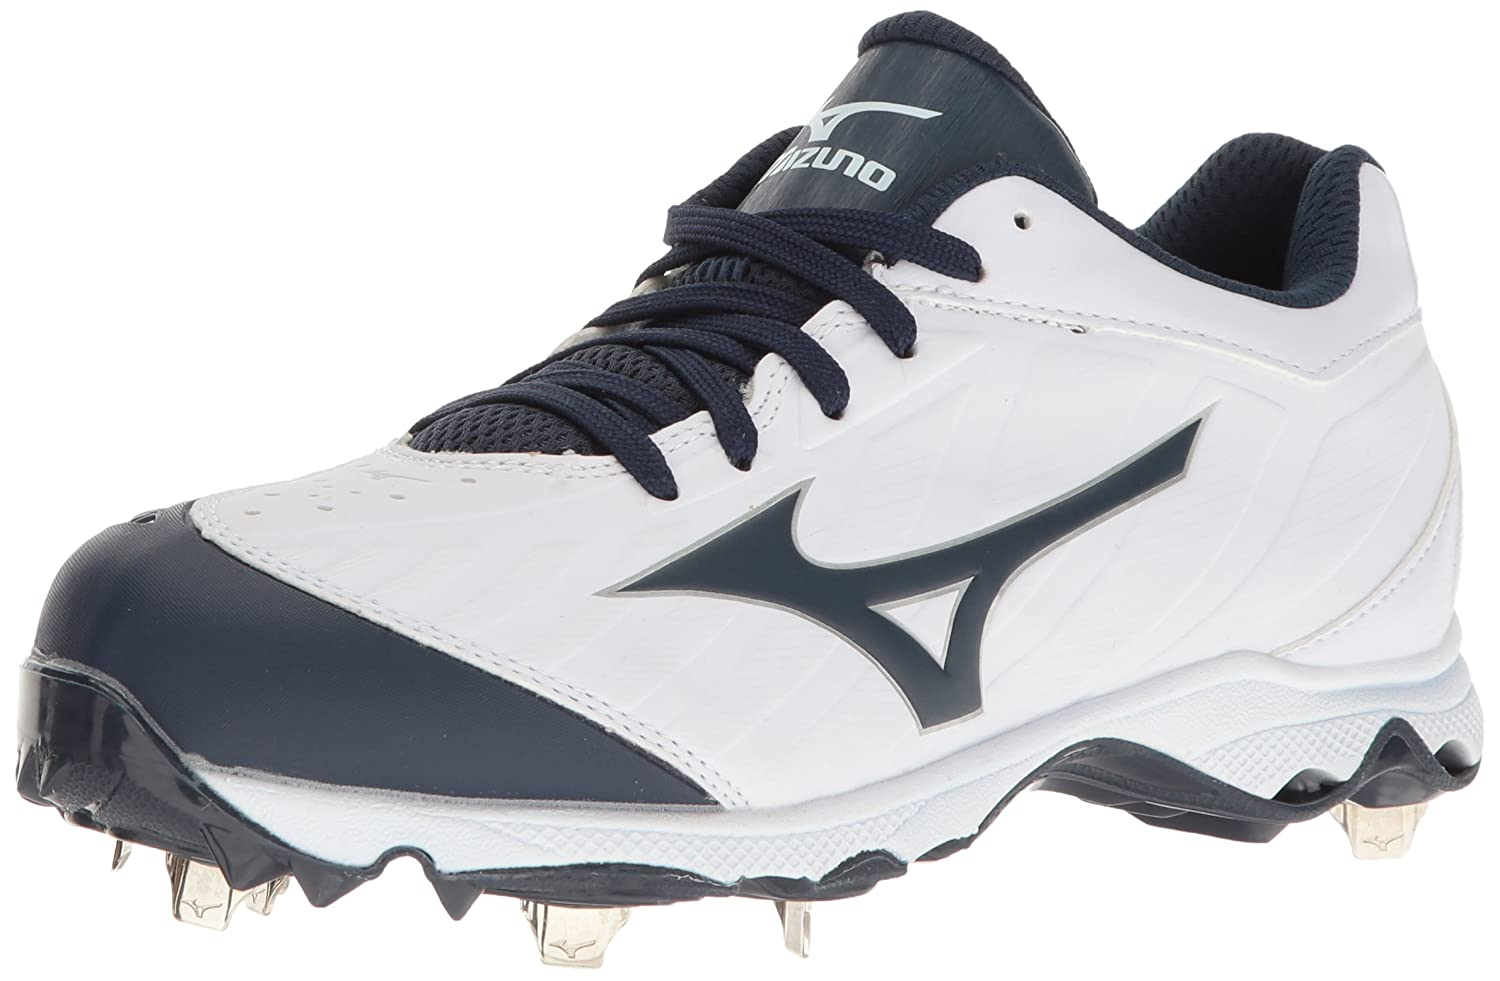 Mizuno Womens 9-Spike Advanced Sweep 3 Low Top Lace Up Baseball Shoes B01HQE2ERO 8.5 C/D US|ホワイト/ネイビー ホワイト/ネイビー 8.5 C/D US